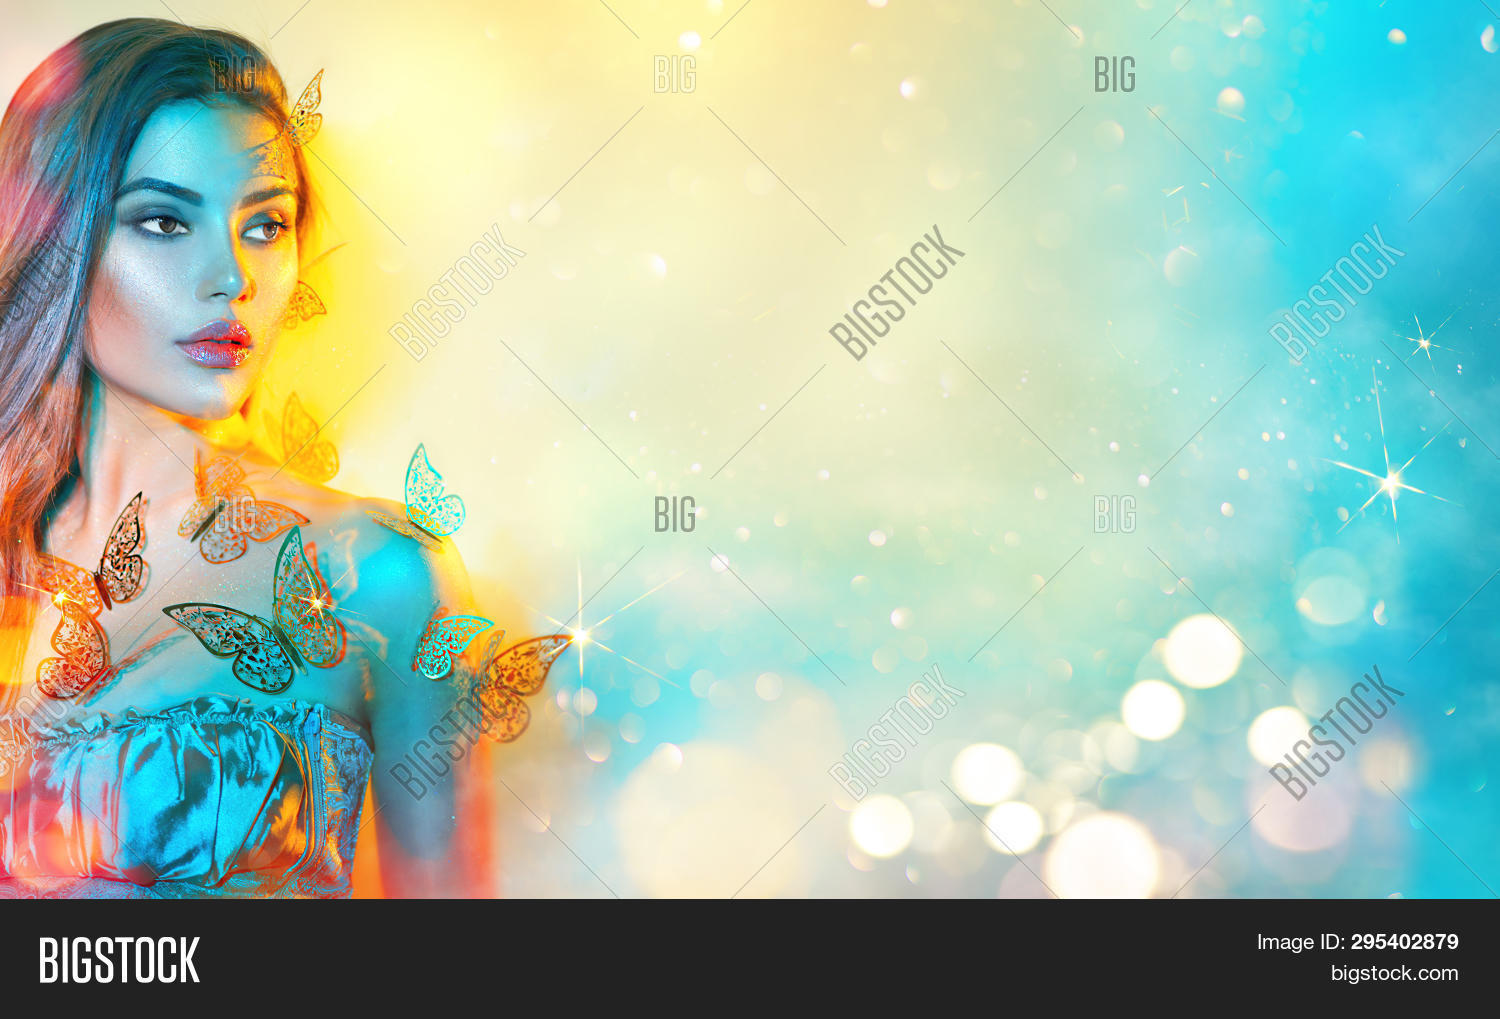 abstract,advertising,art,artist,background,beautiful,beauty,blue,body,bright,butterfly,carnival,caucasian,color,colored,colorful,colour,colourful,design,face,fantasy,fashion,festival,girl,glamour,gorgeous,high,lights,make up,make-up,makeup,model,multicolor,multicolored,multicolour,multicoloured,nature,neon,portrait,red,sexy,spring,stylish,summer,trends,trendy,uv,vivid,woman,young